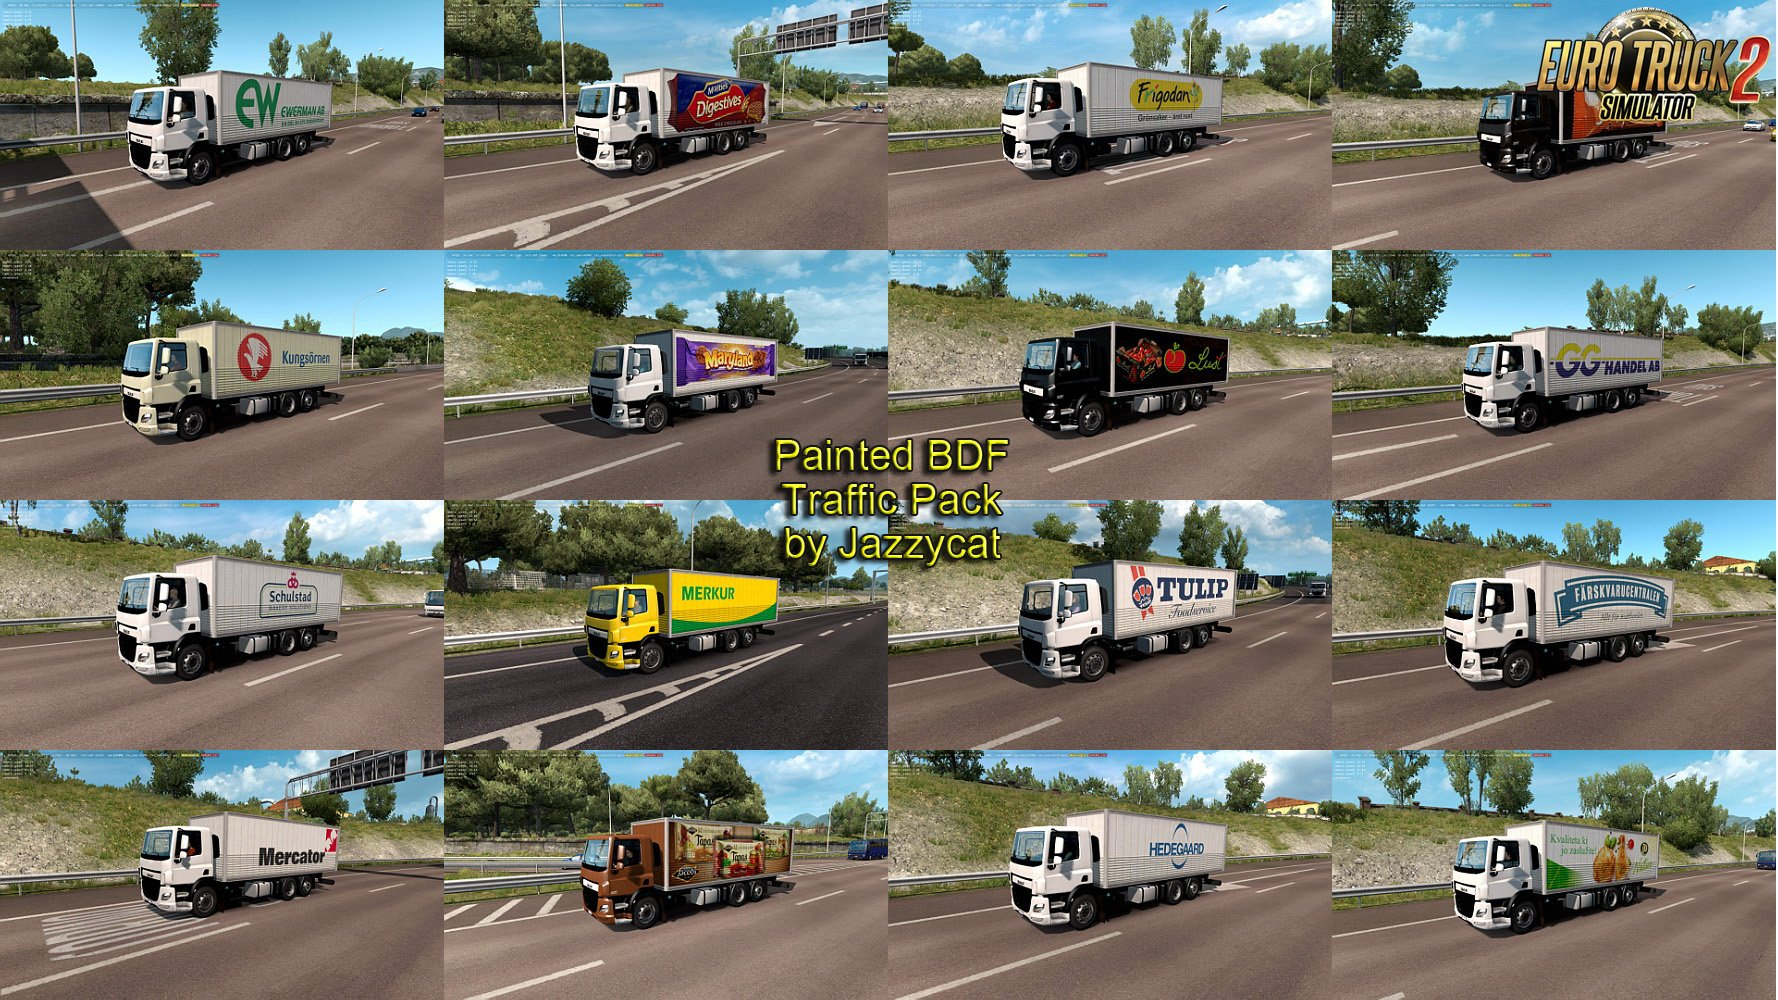 Painted BDF Traffic Pack v3.9 by Jazzycat